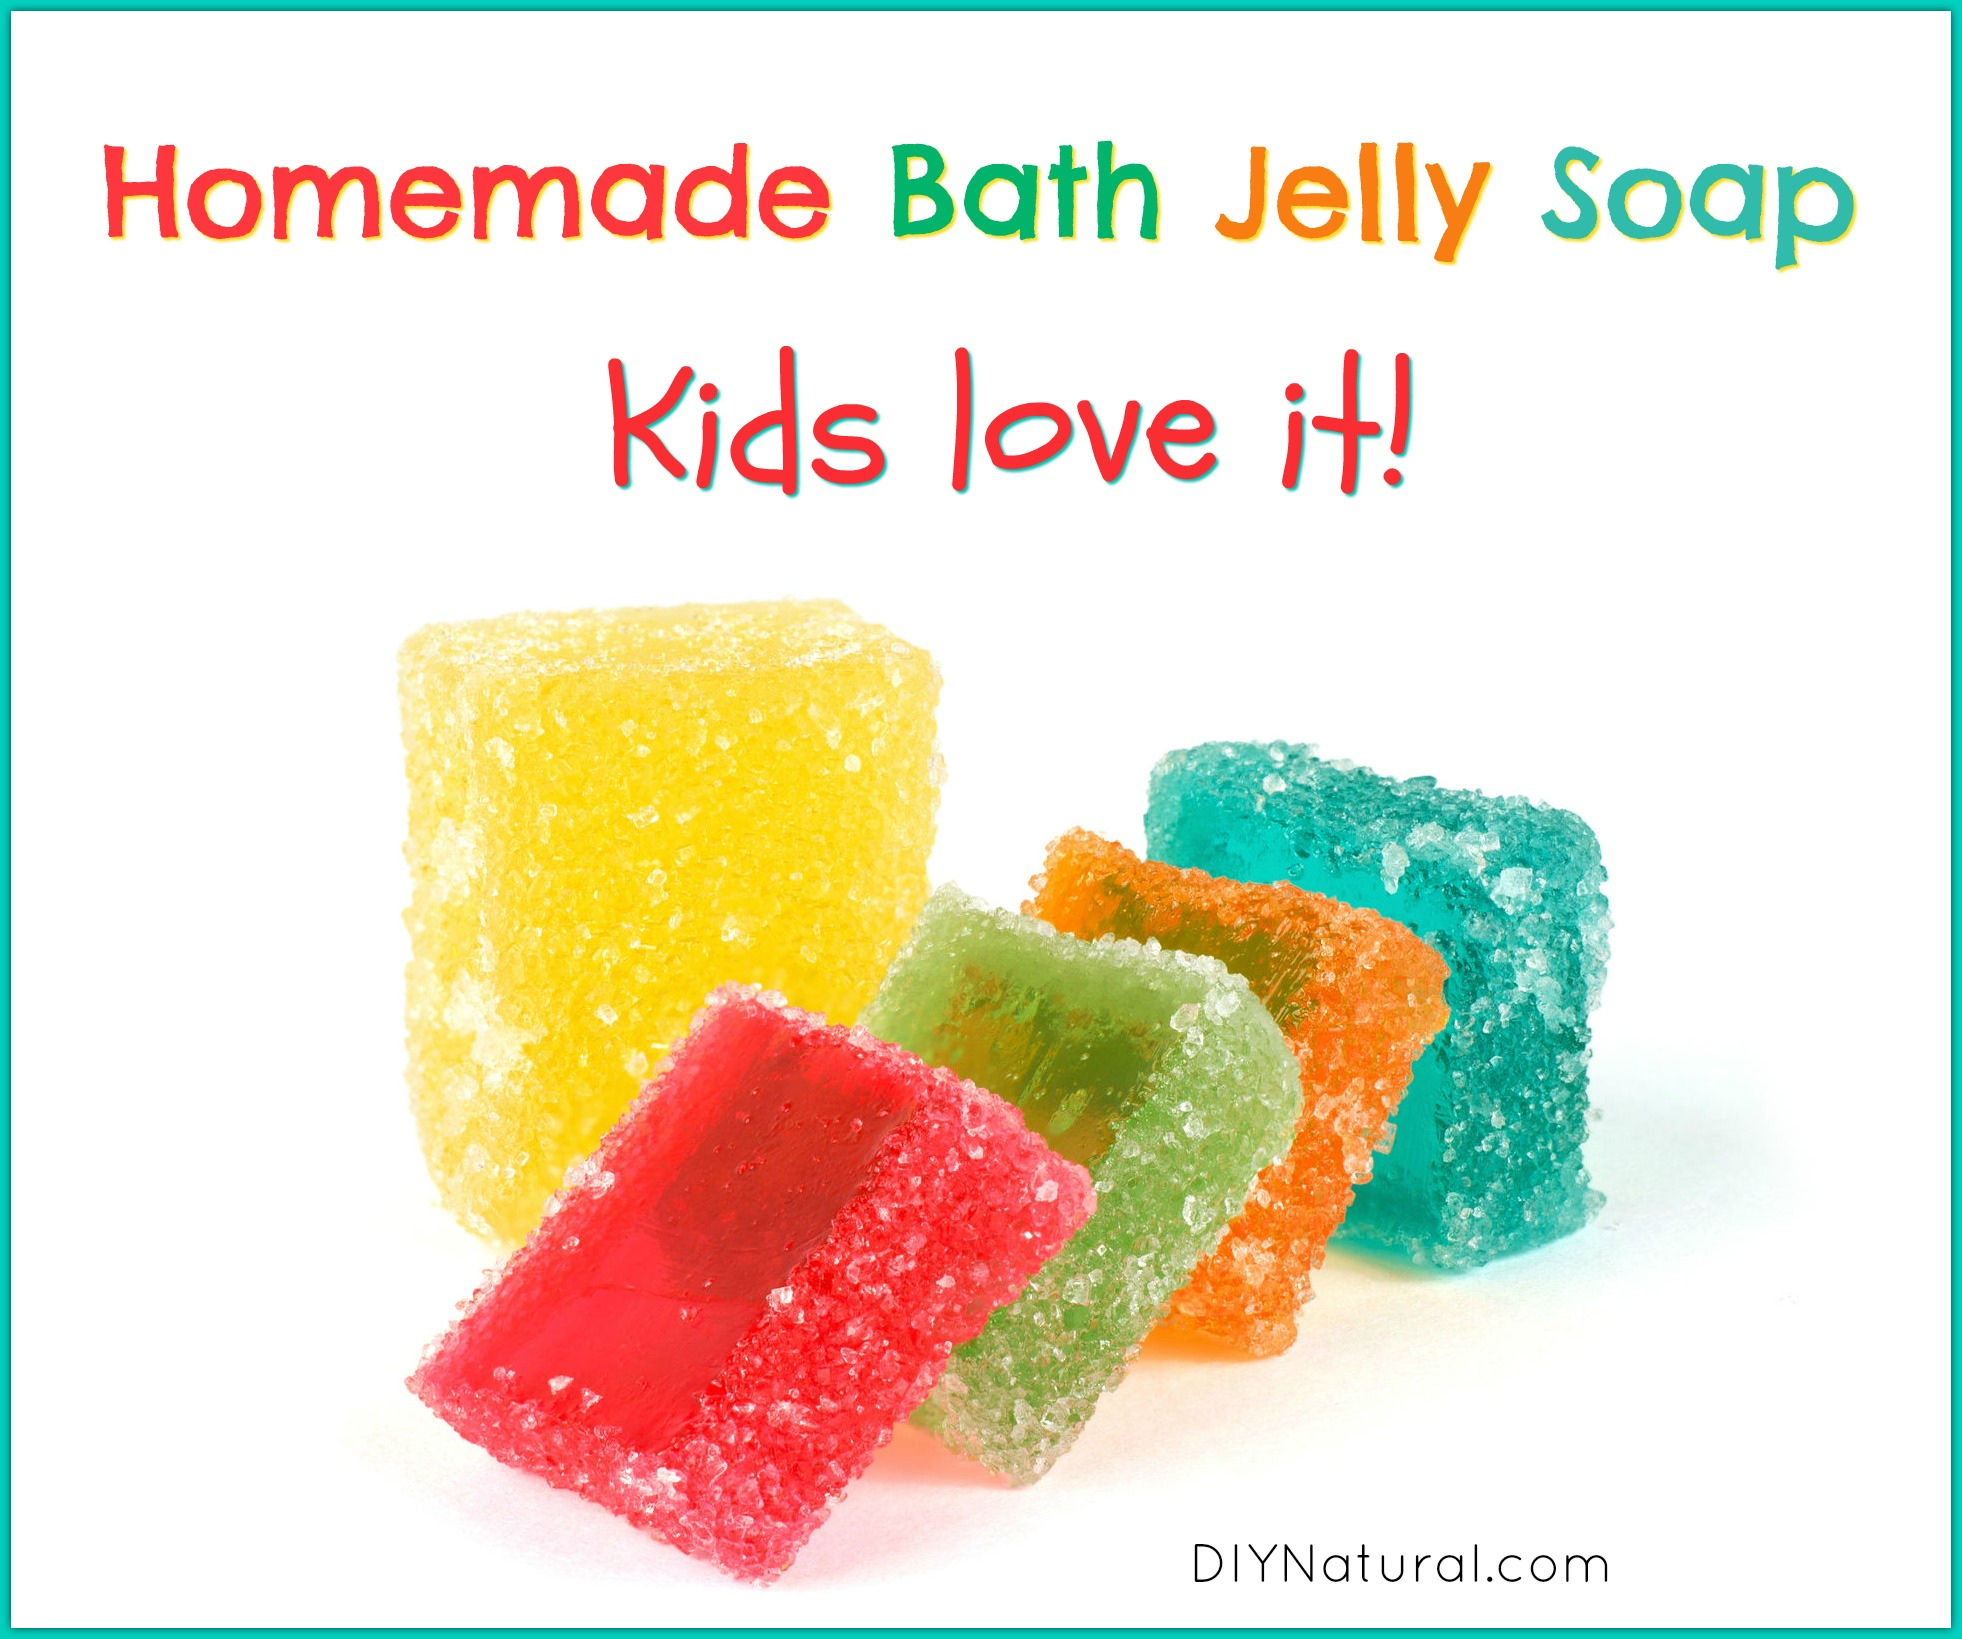 Jelly Soap: A DIY Recipe for Bath Jelly Soap that the Kids Love